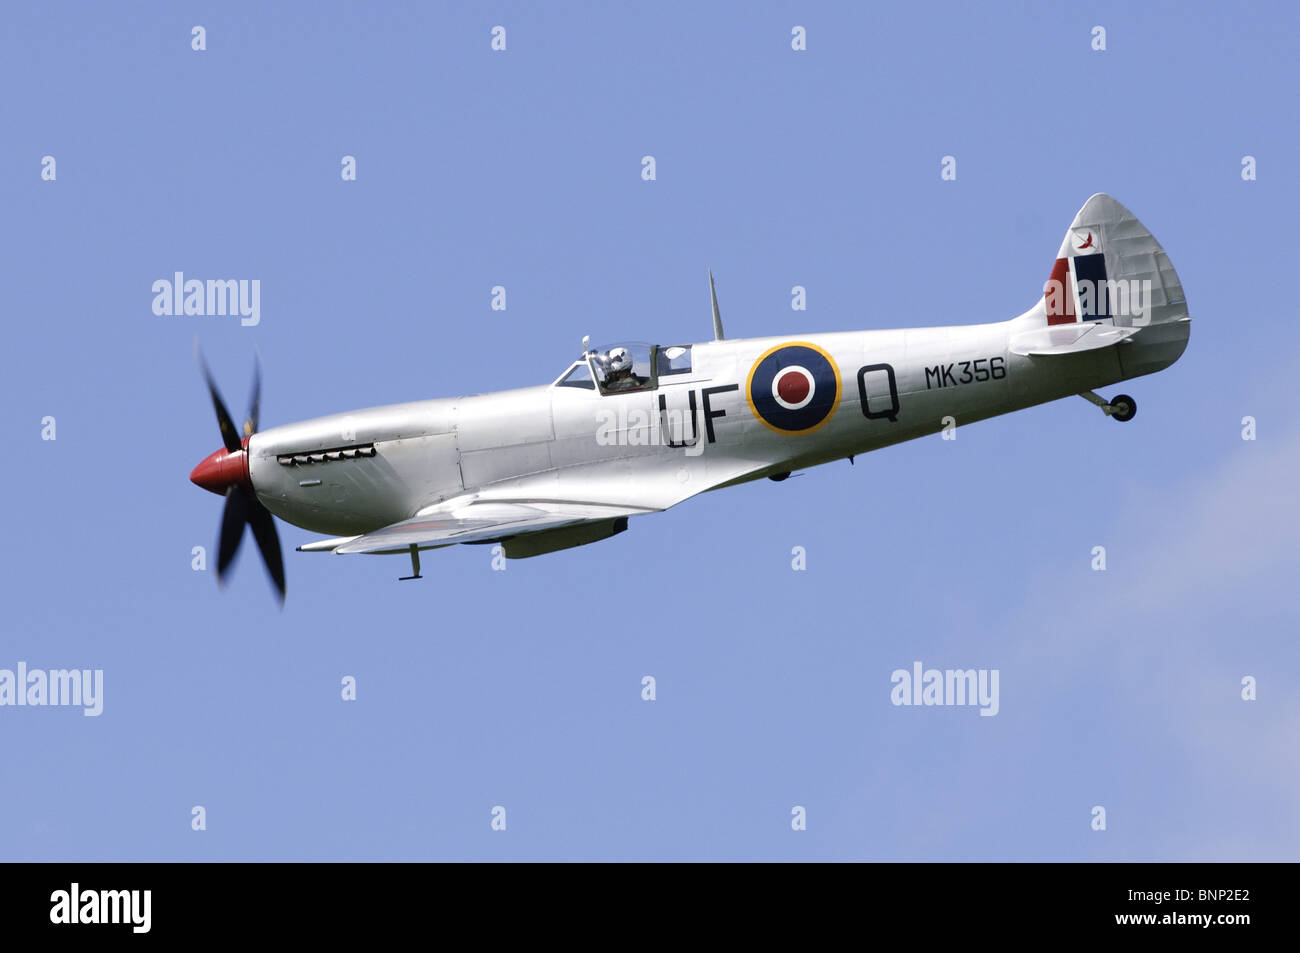 Supermarine Spitfire LFIXe plane operated by the RAF Battle of Britain Flight. - Stock Image